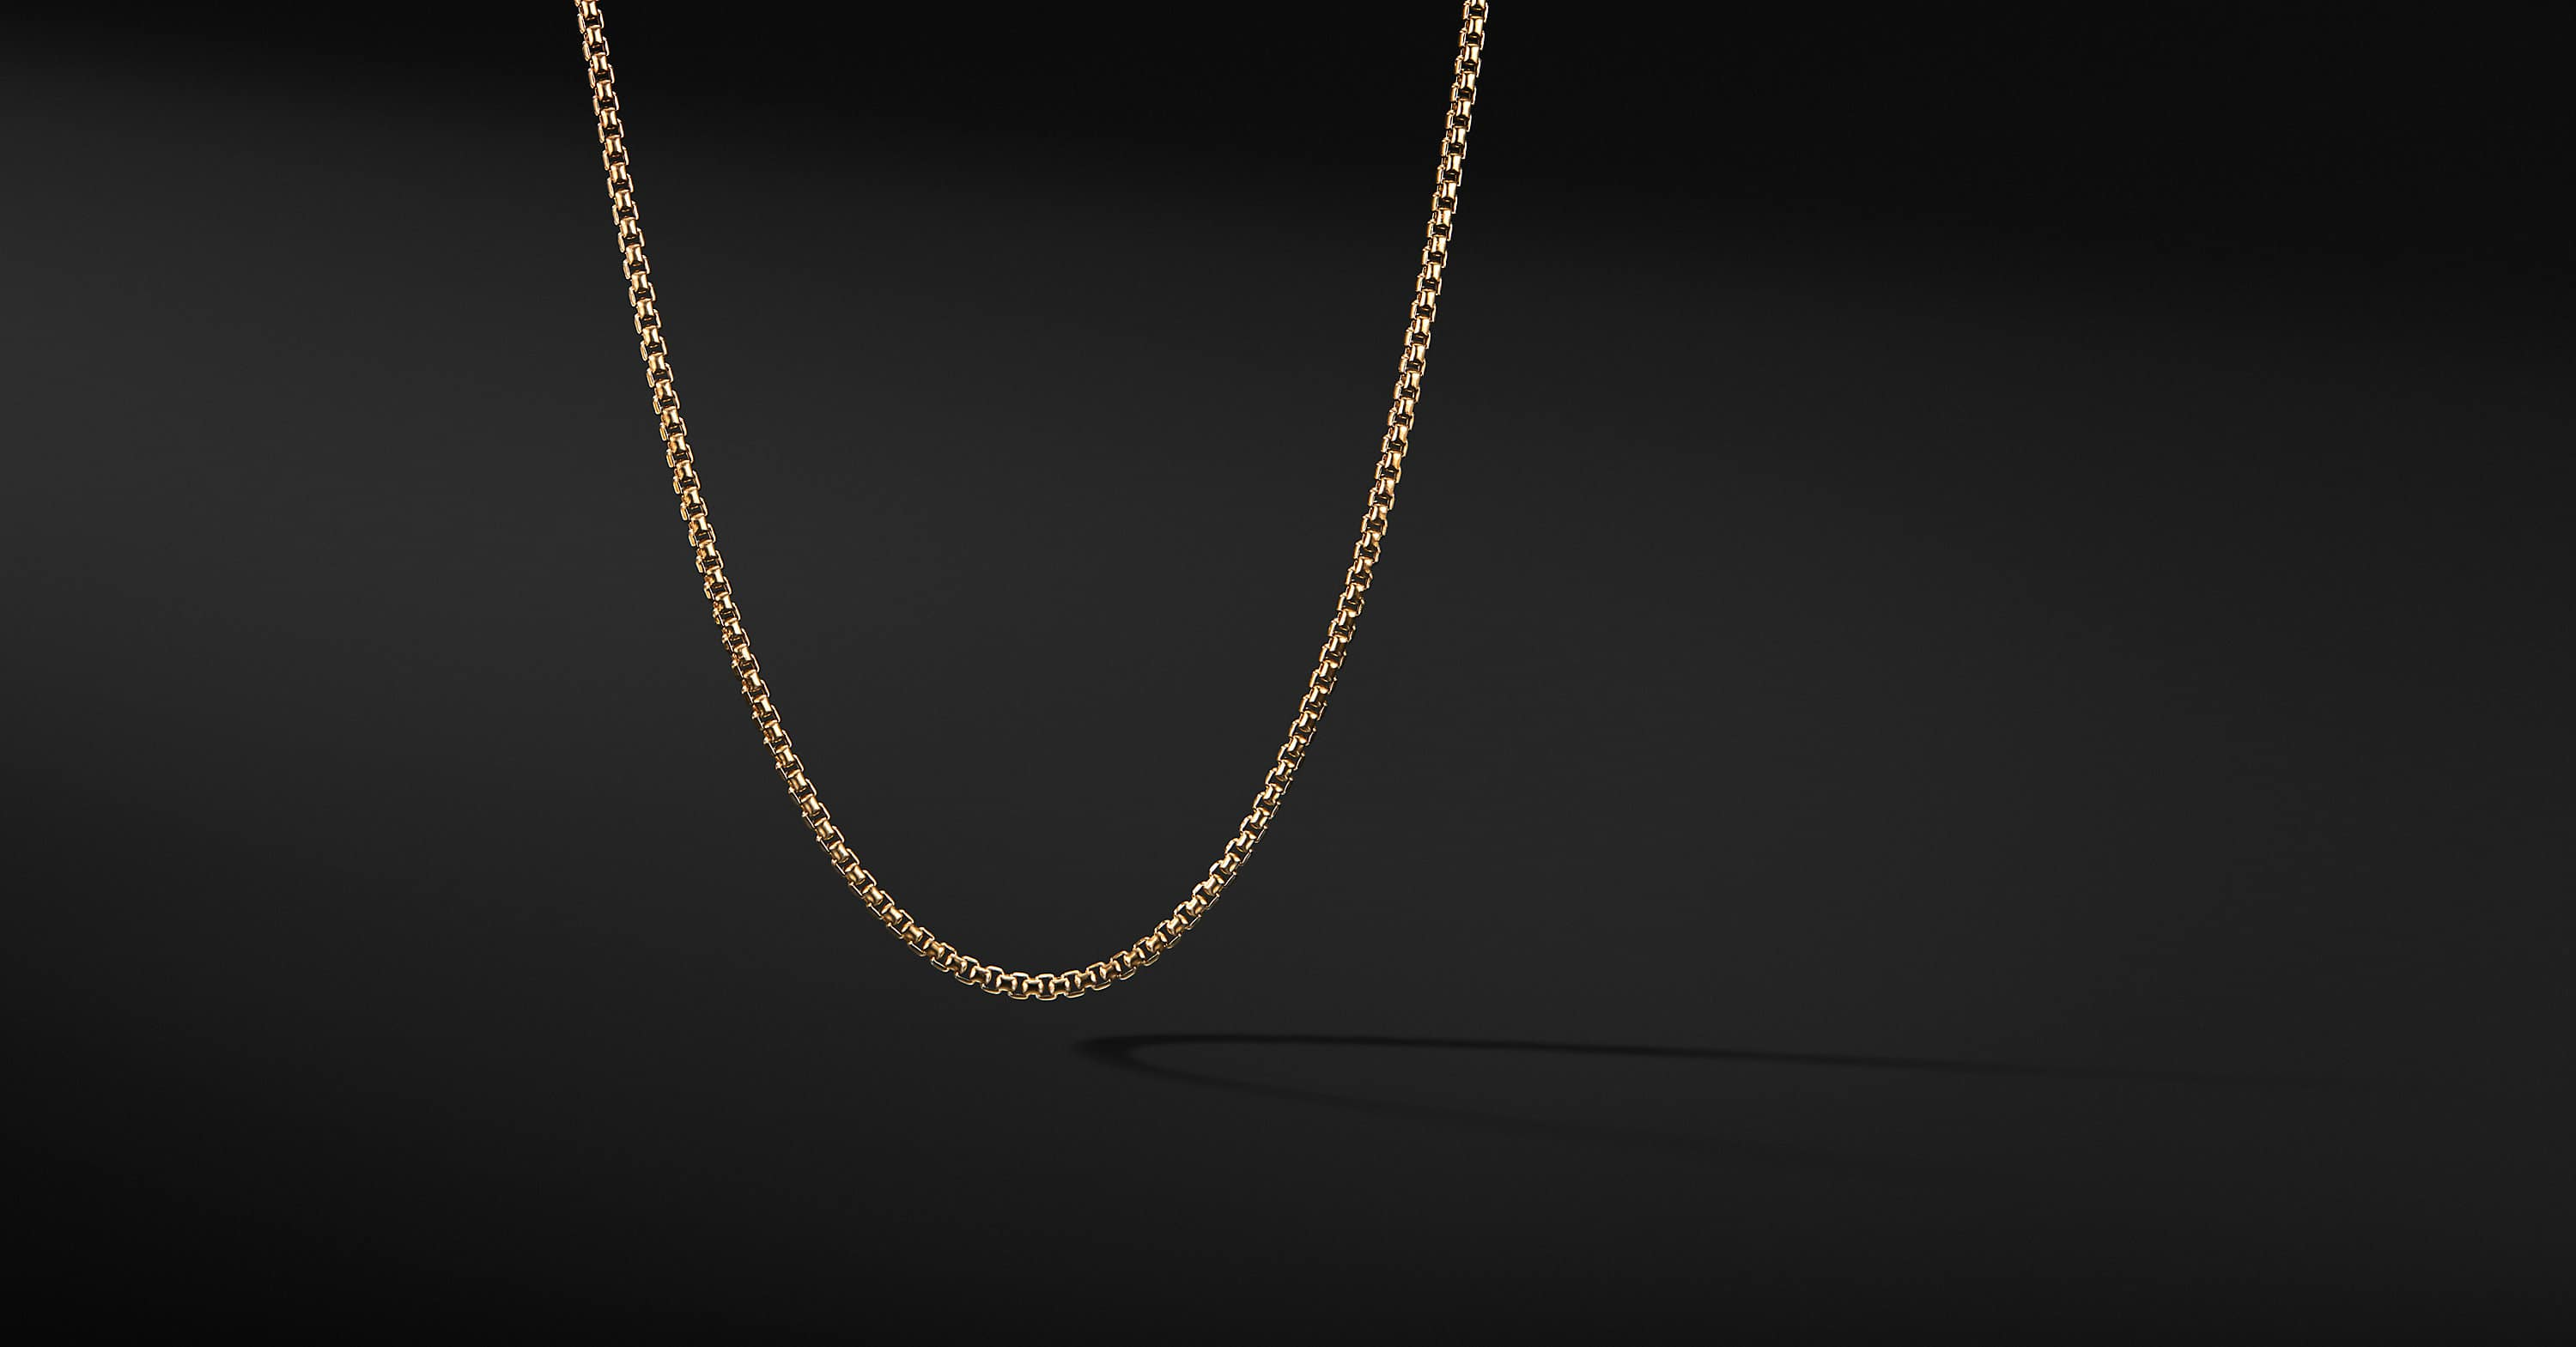 Box Chain Necklace in 18K Yellow Gold, 2.7mm